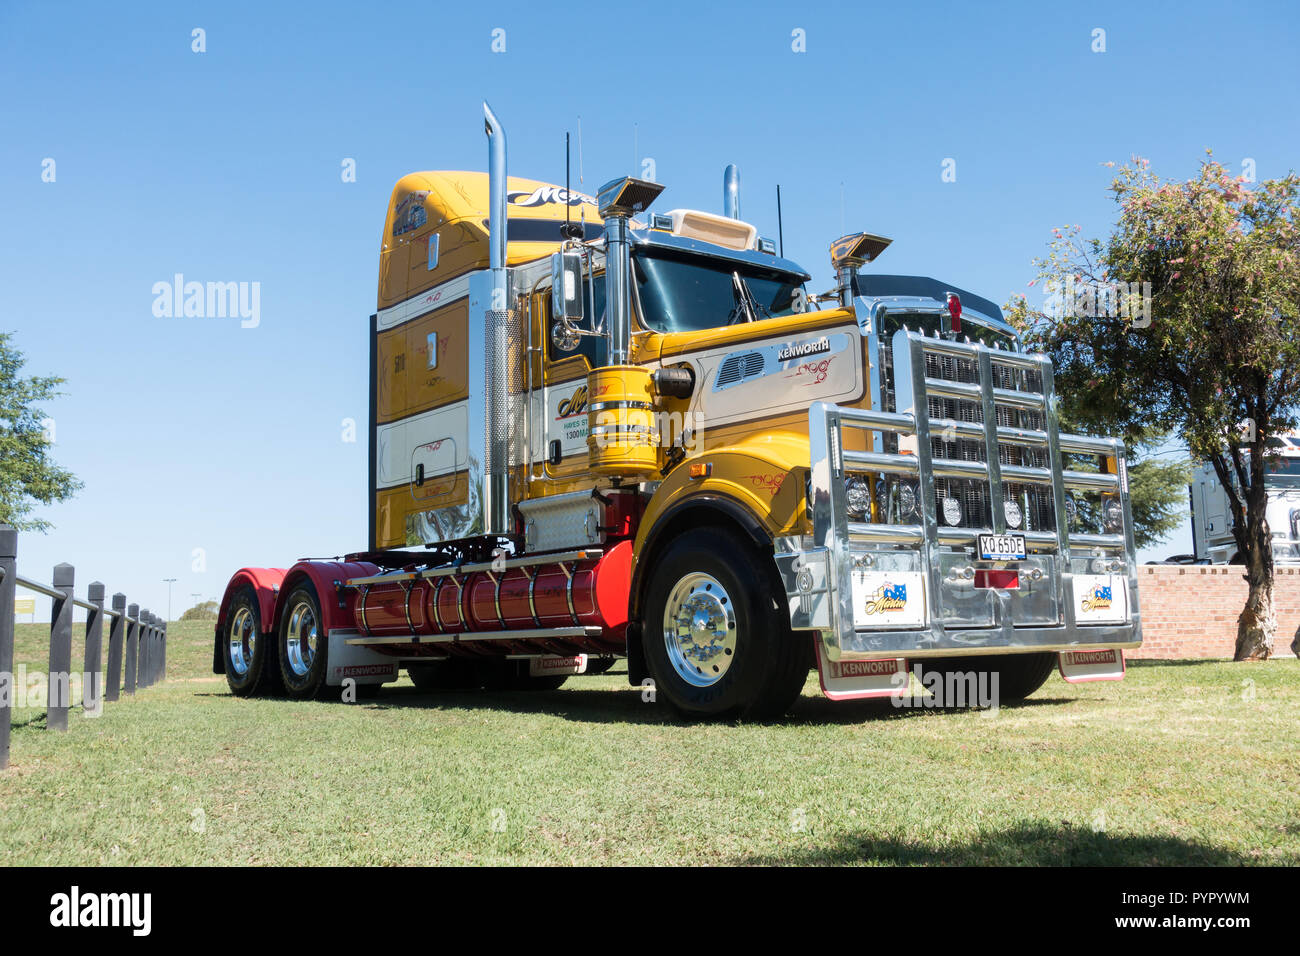 A Kenworth Long nose prime mover truck with heavily chromed bull bar. - Stock Image